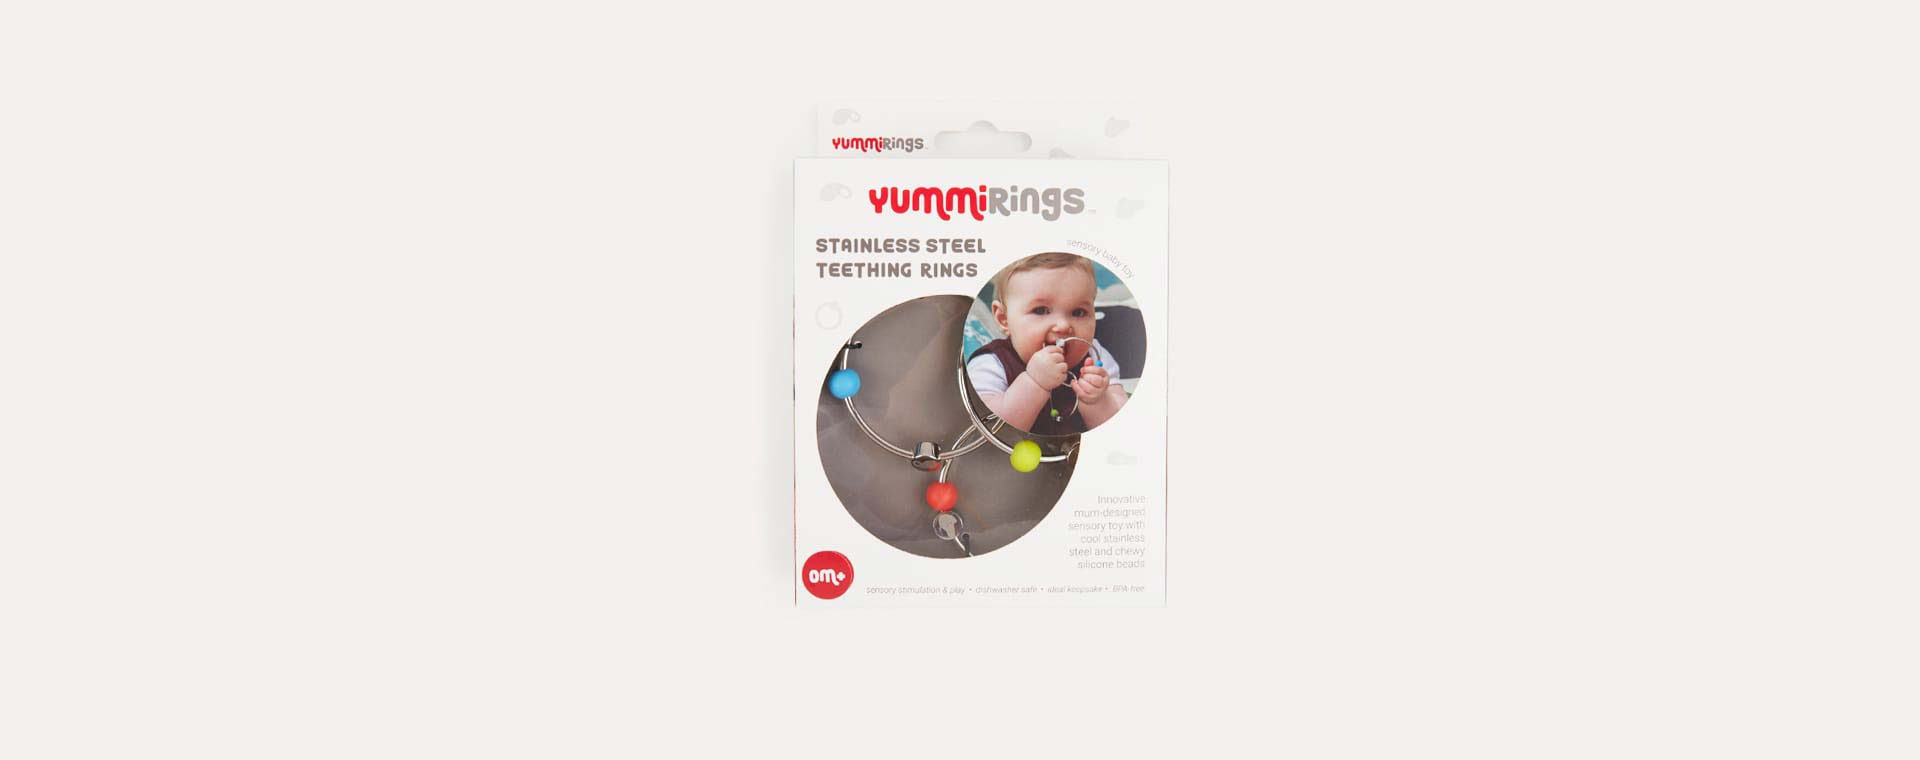 Silver Yummikeys Stainless Steel Teething Rings